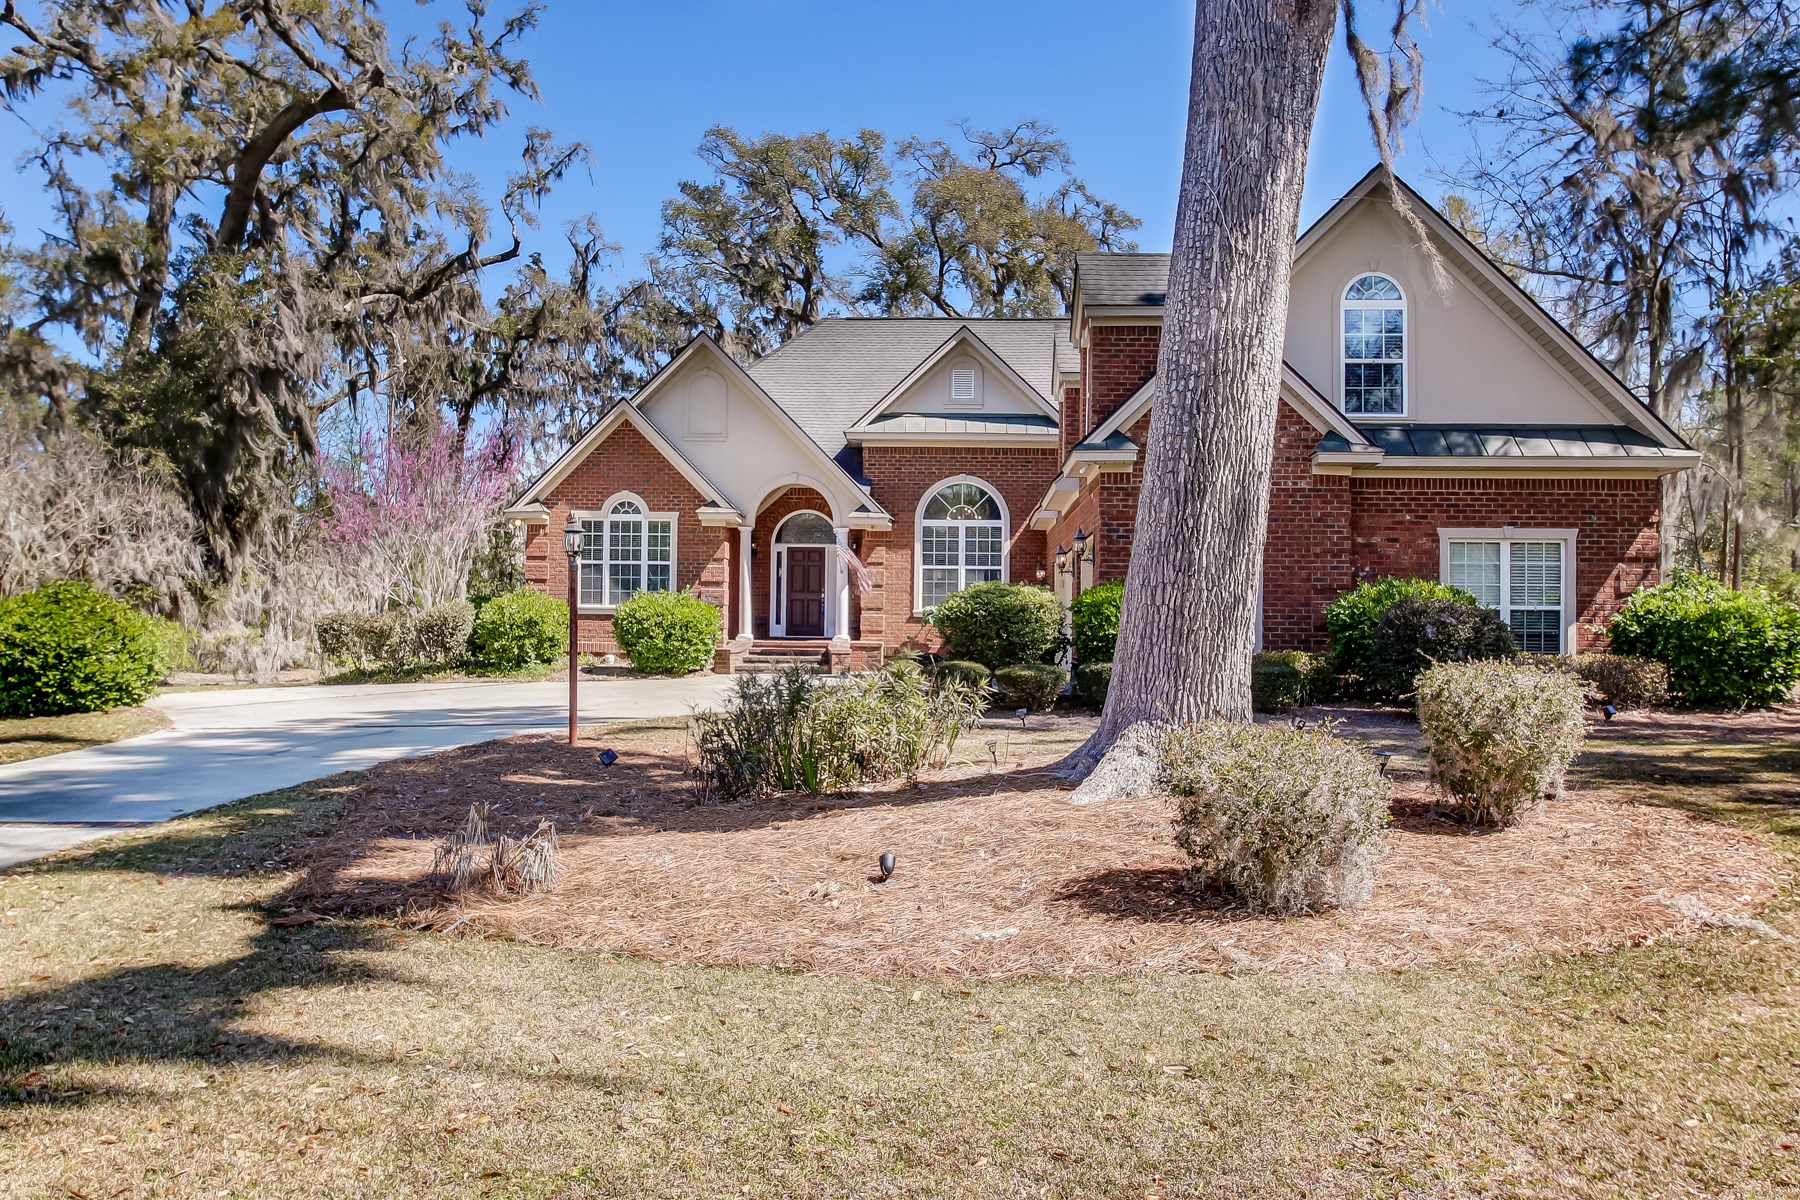 Villa per Vendita alle ore 45 McNeil Trail Richmond Hill, Georgia 31324 Stati Uniti